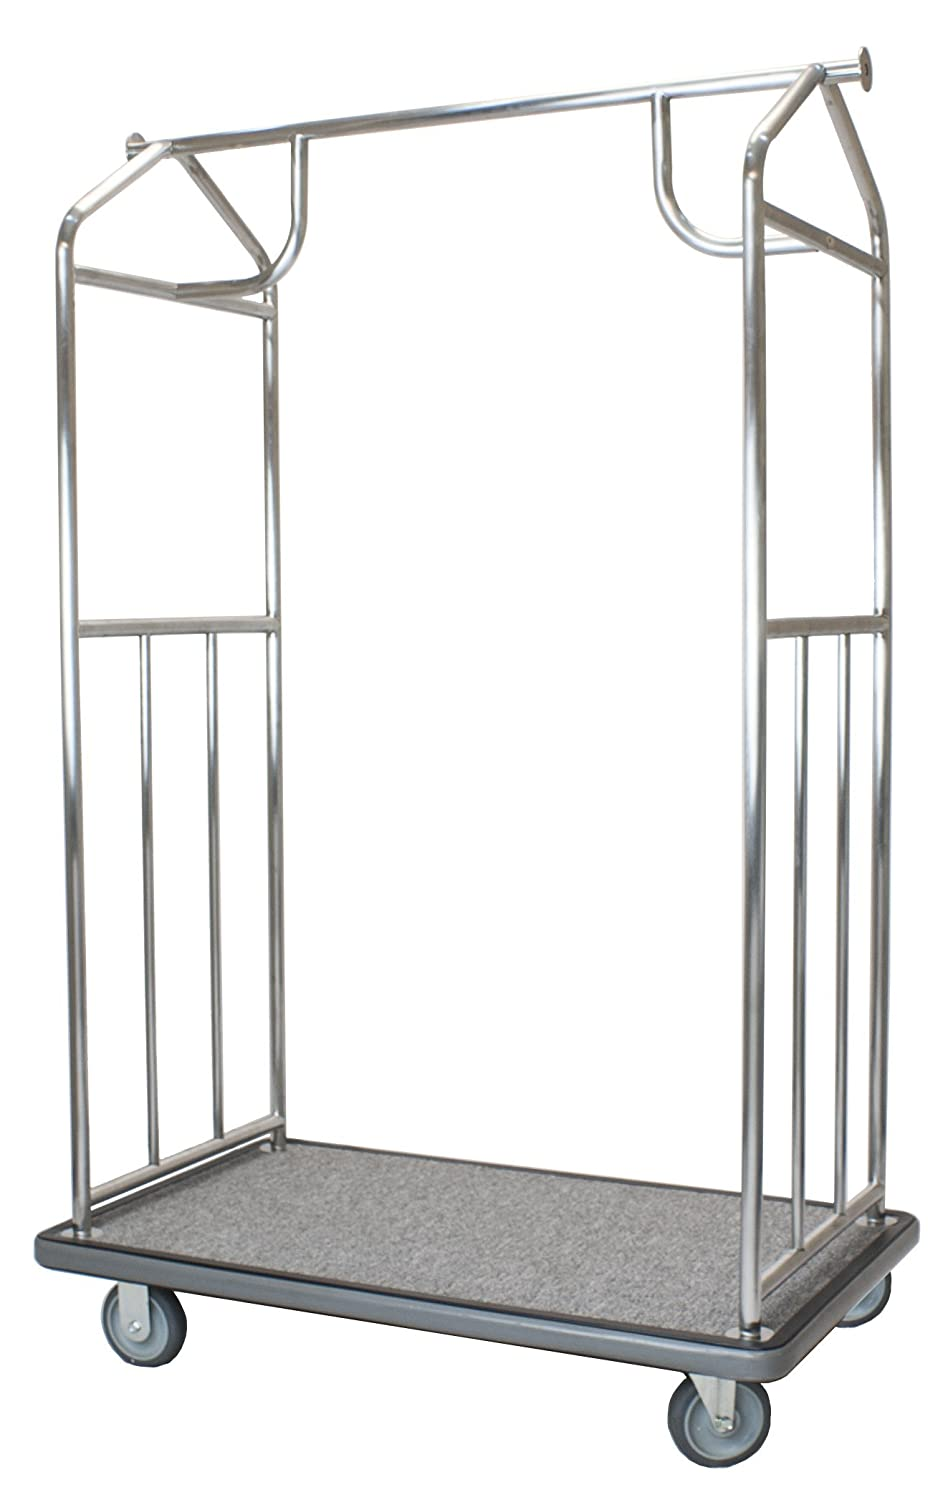 f648fae518b1 Wholesale Hotel Products Value Valet Bellman's Cart, Brushed Stainless  Steel Finish